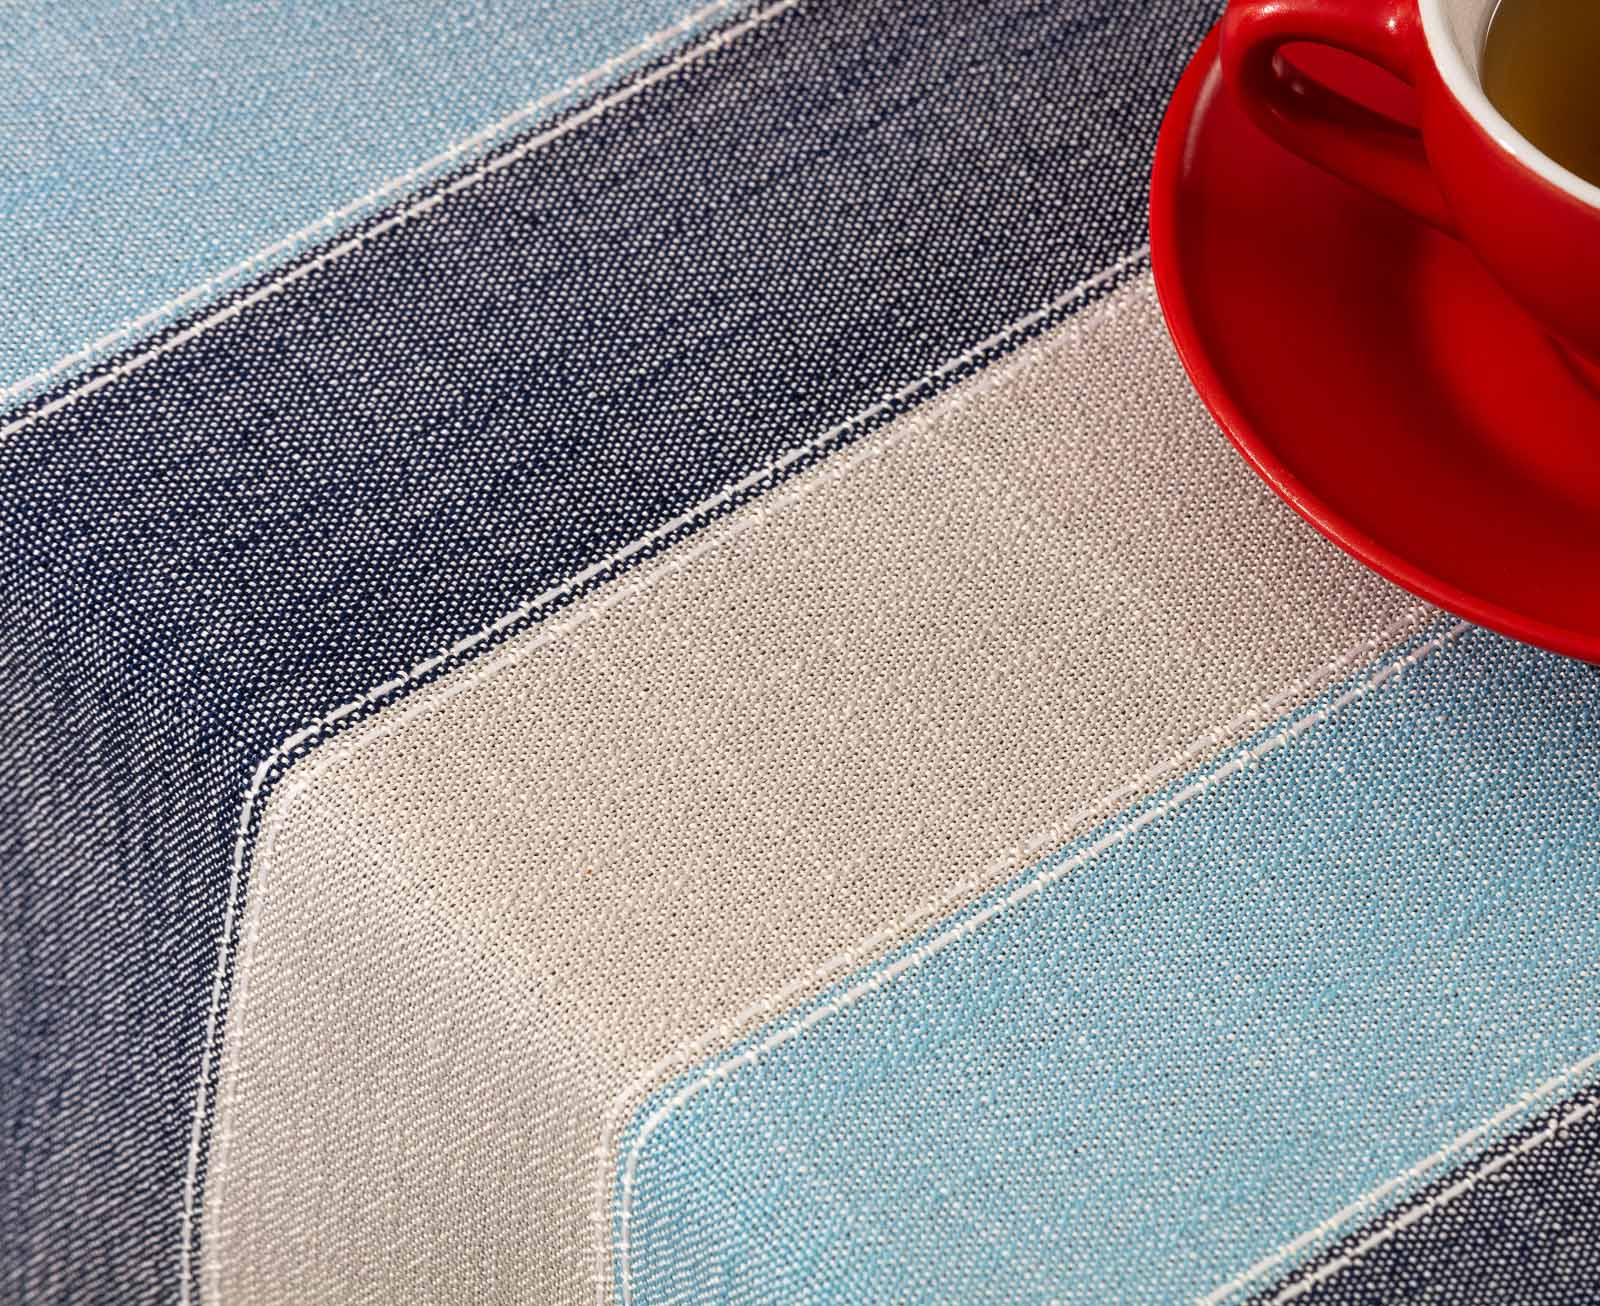 Table Cloth closeup with tea cup showing colour and texture - close-up product photography in studio sample